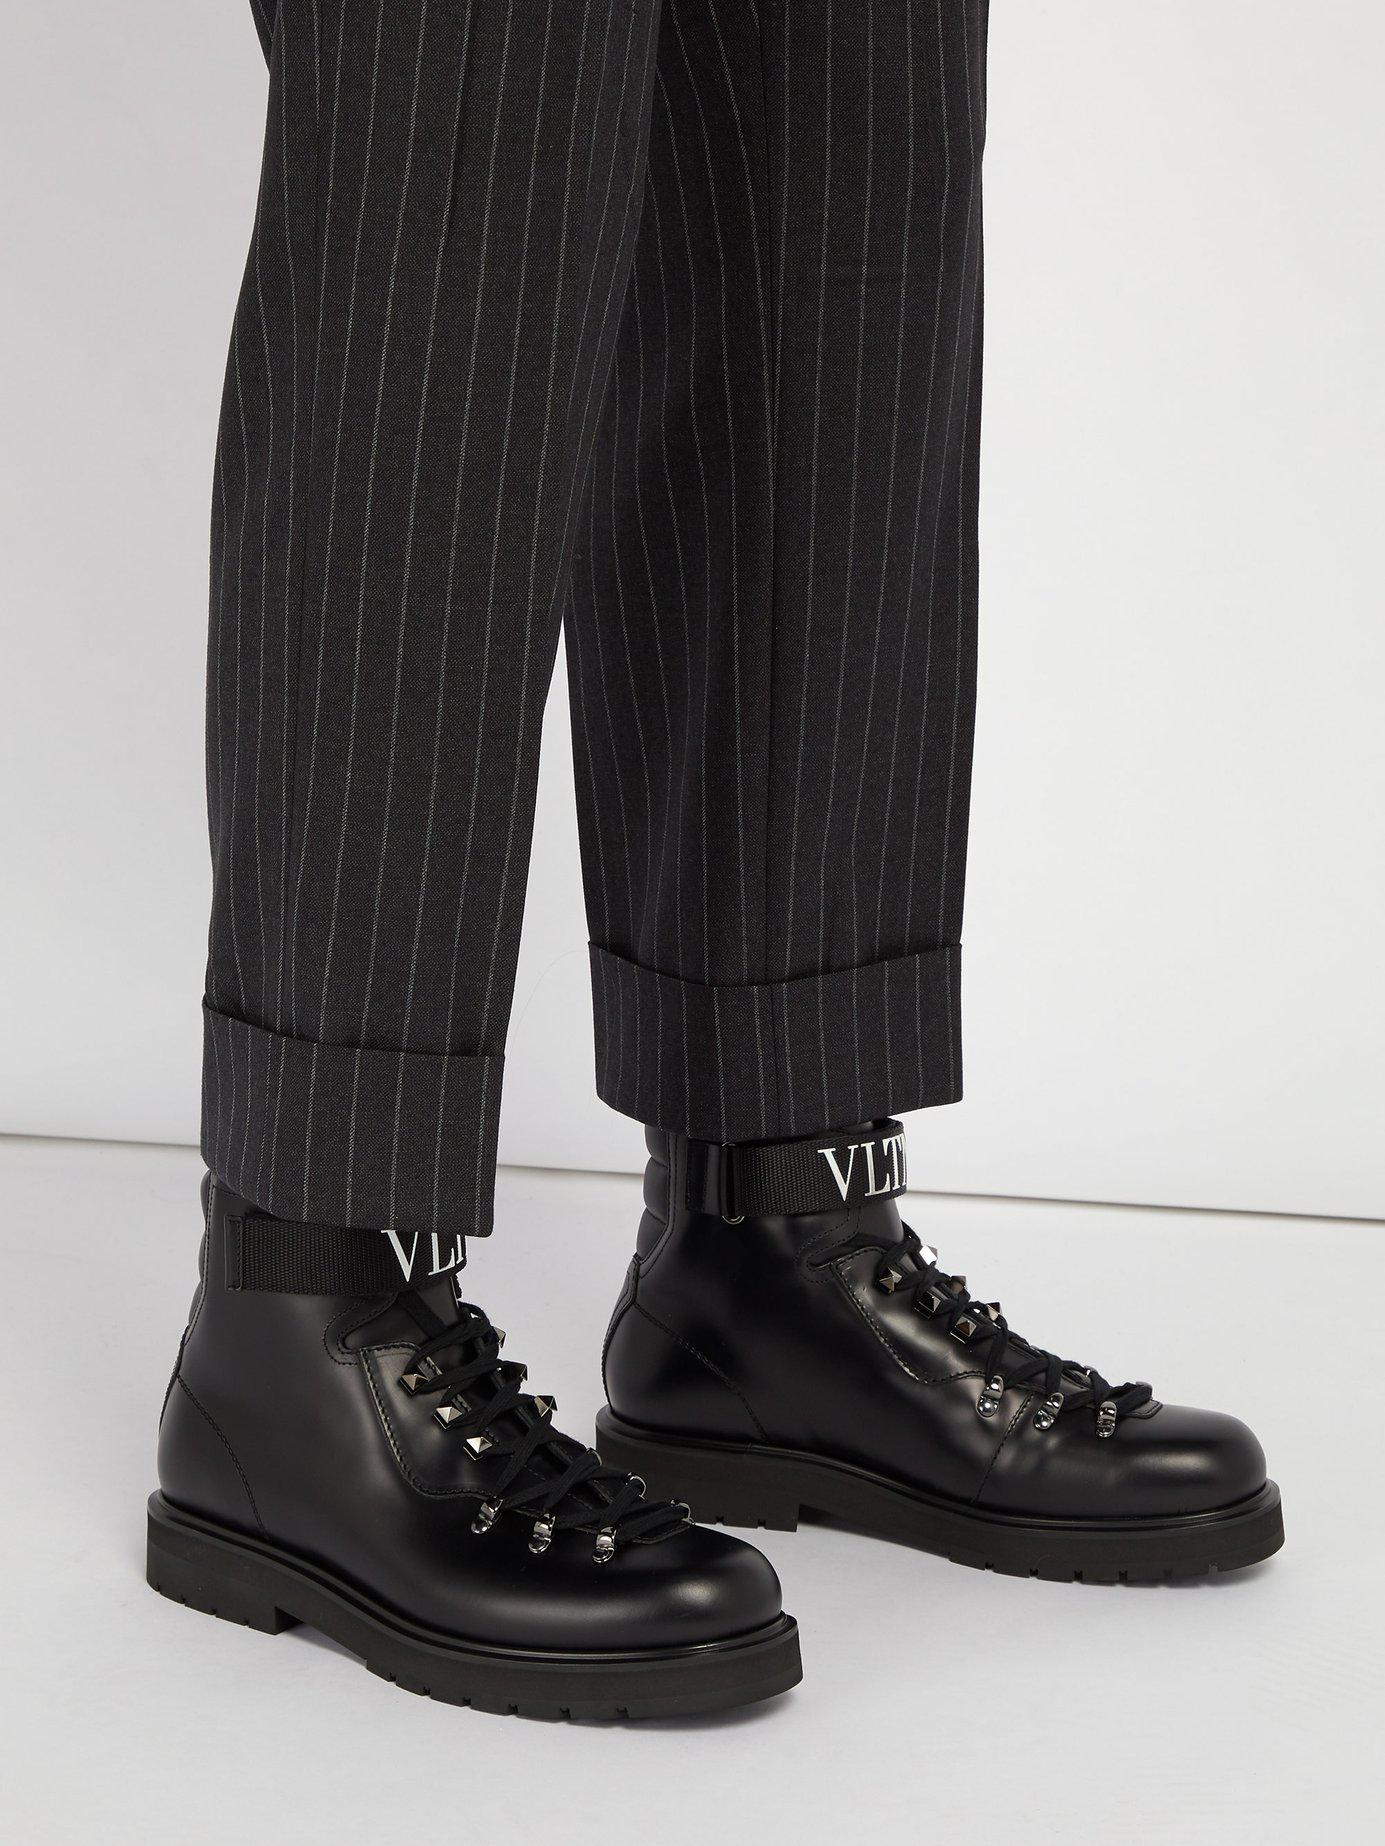 45883b3bb45 Valentino Black Vltn Lace-up Leather Boots for men